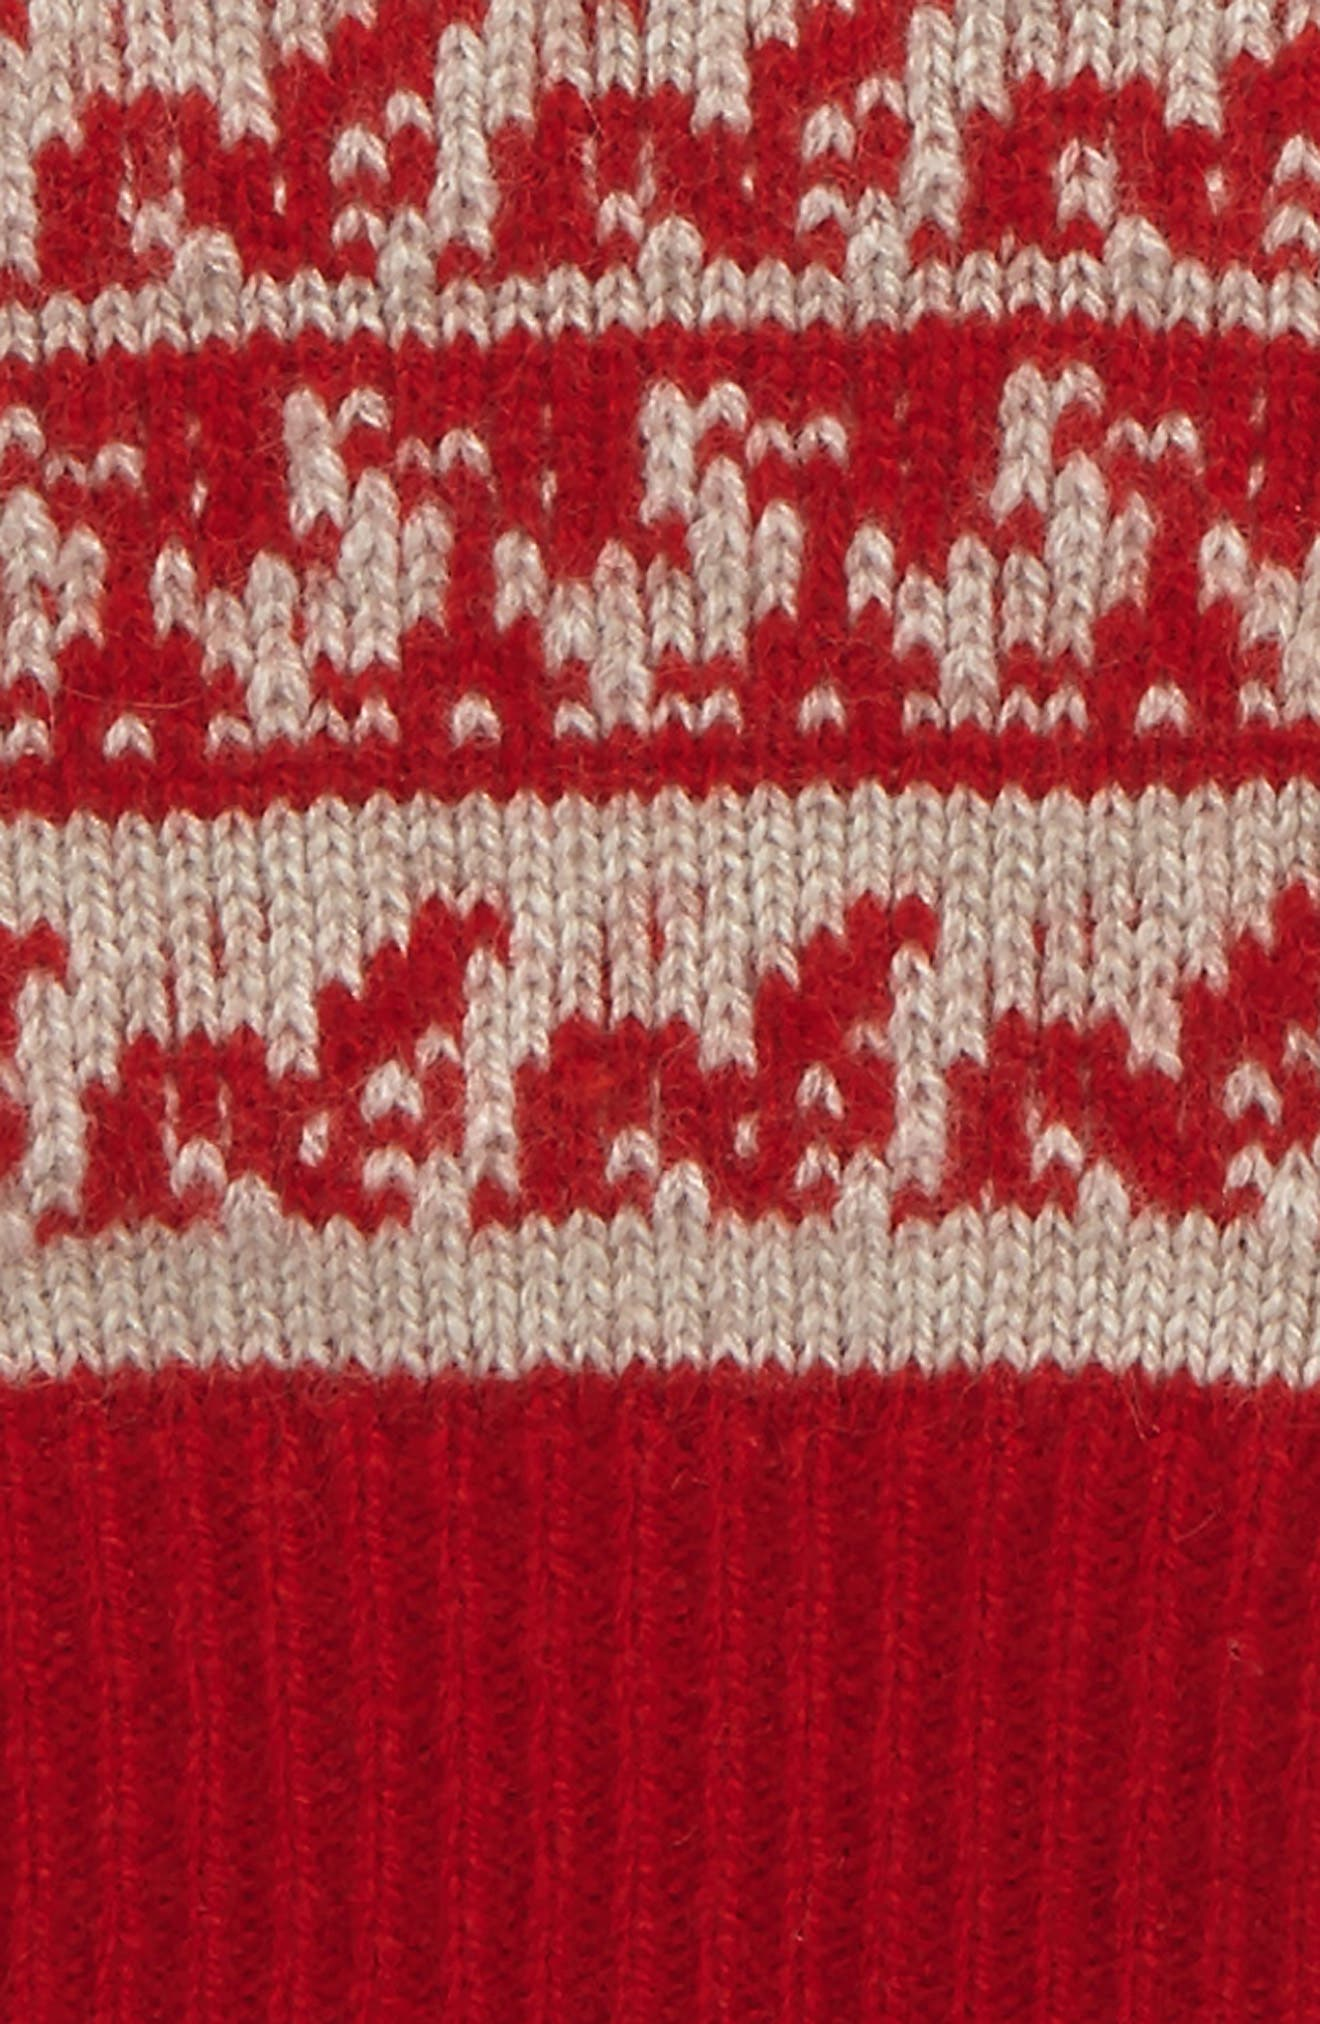 Fair Isle Cashmere & Wool Fingerless Gloves,                             Alternate thumbnail 2, color,                             600